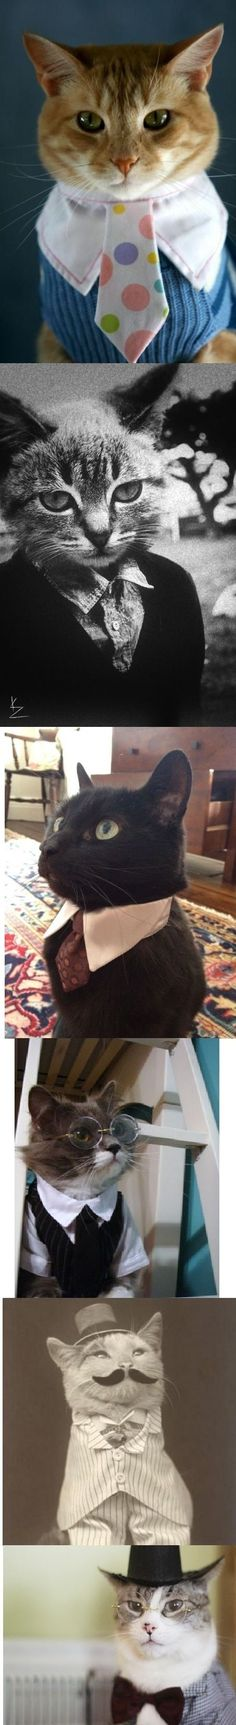 Want to make some kitty ties for the adoptable cats at the rescue where I work.